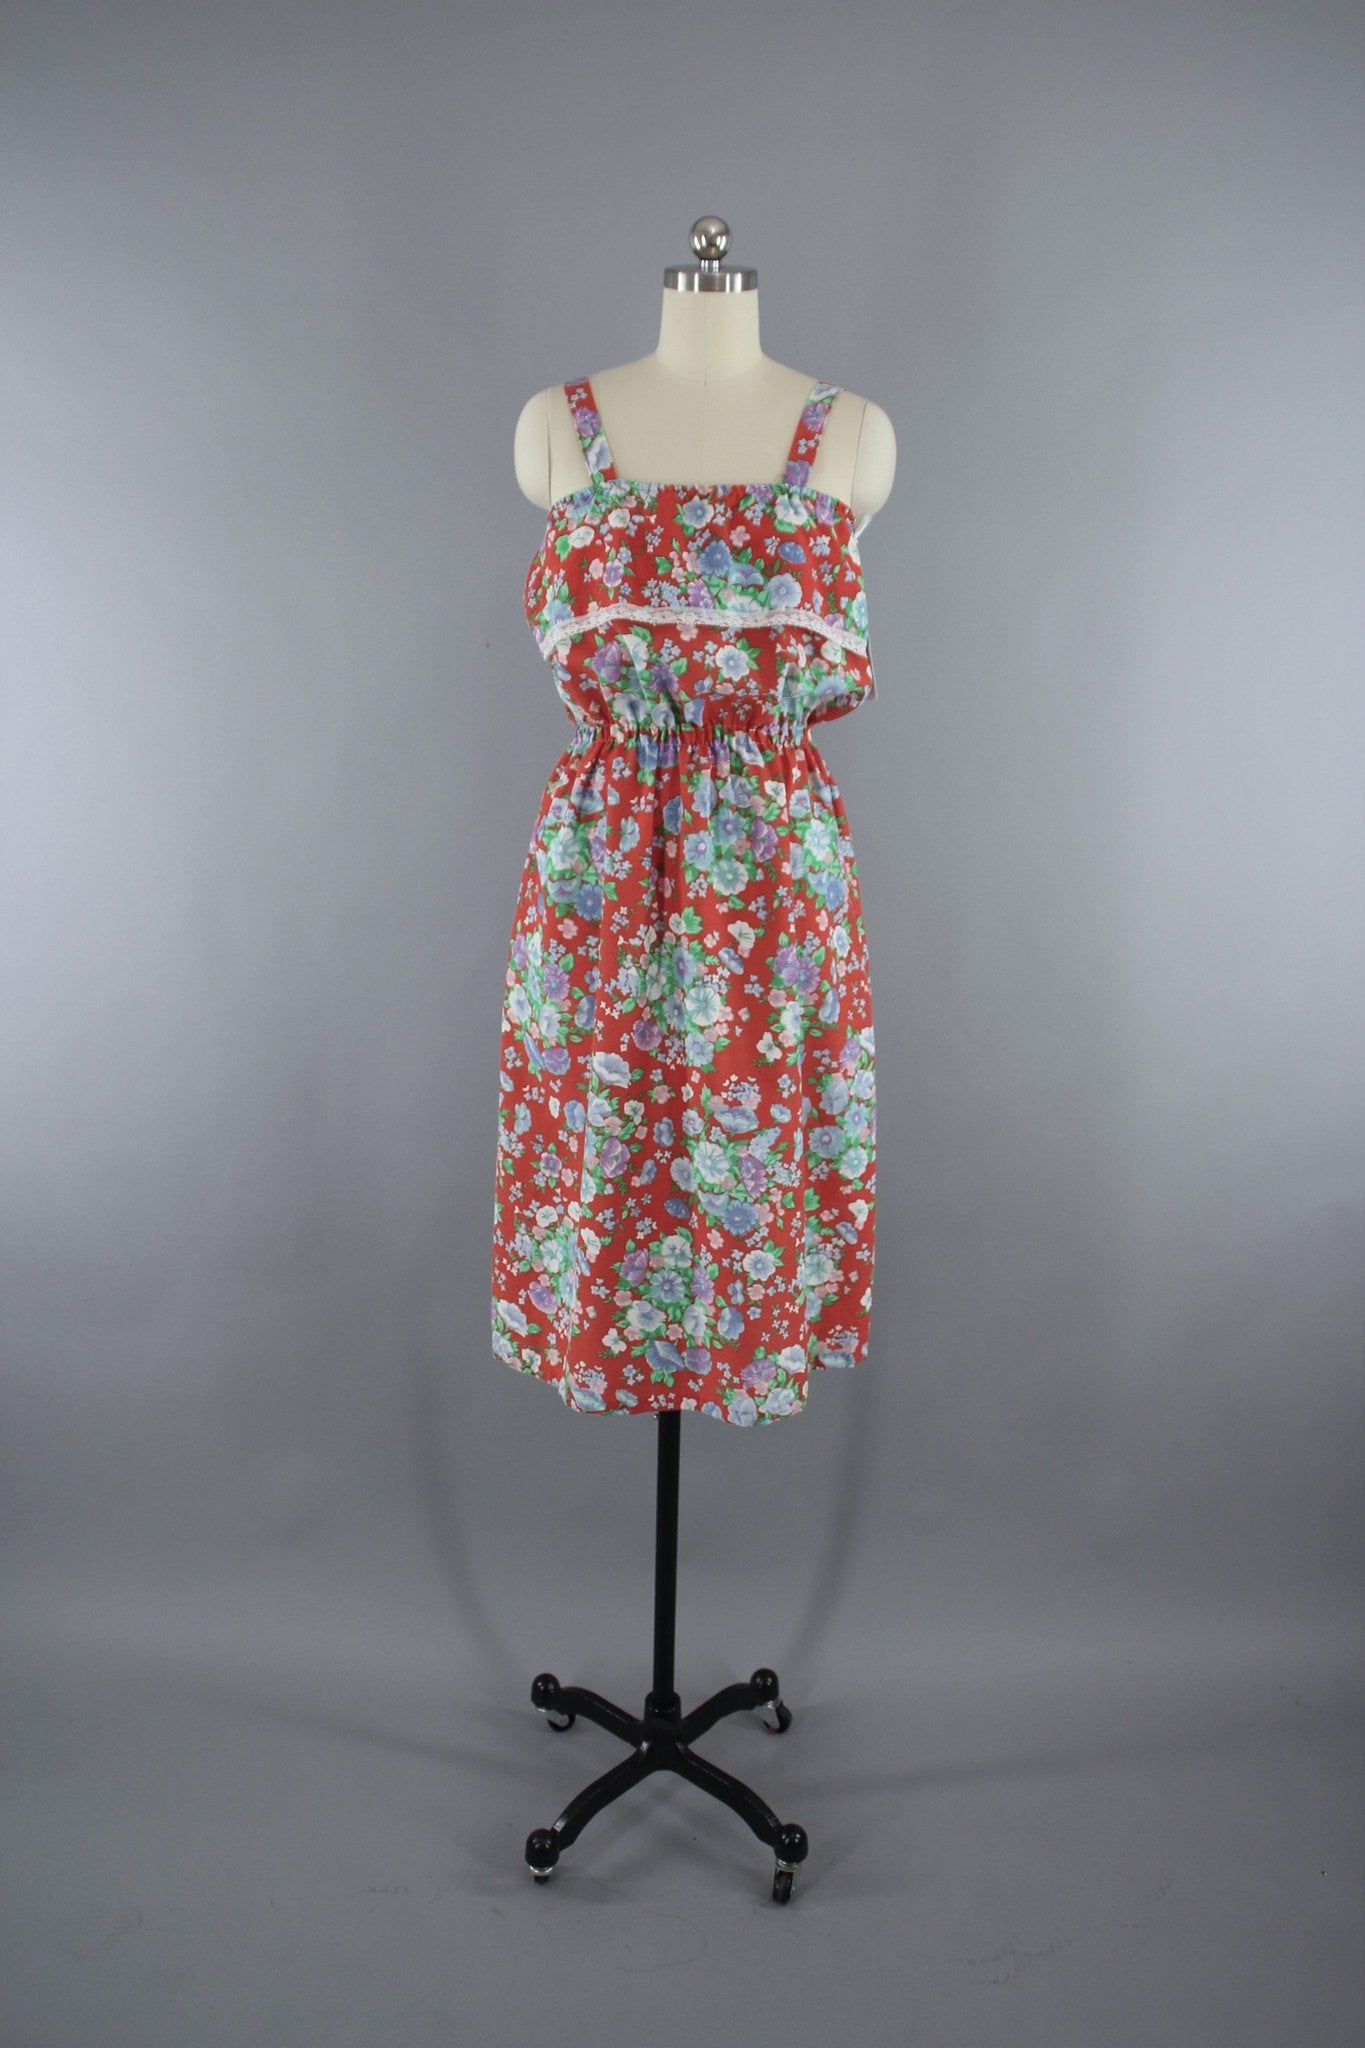 1980s Vintage Red Floral Print Sundress Dress ThisBlueBird